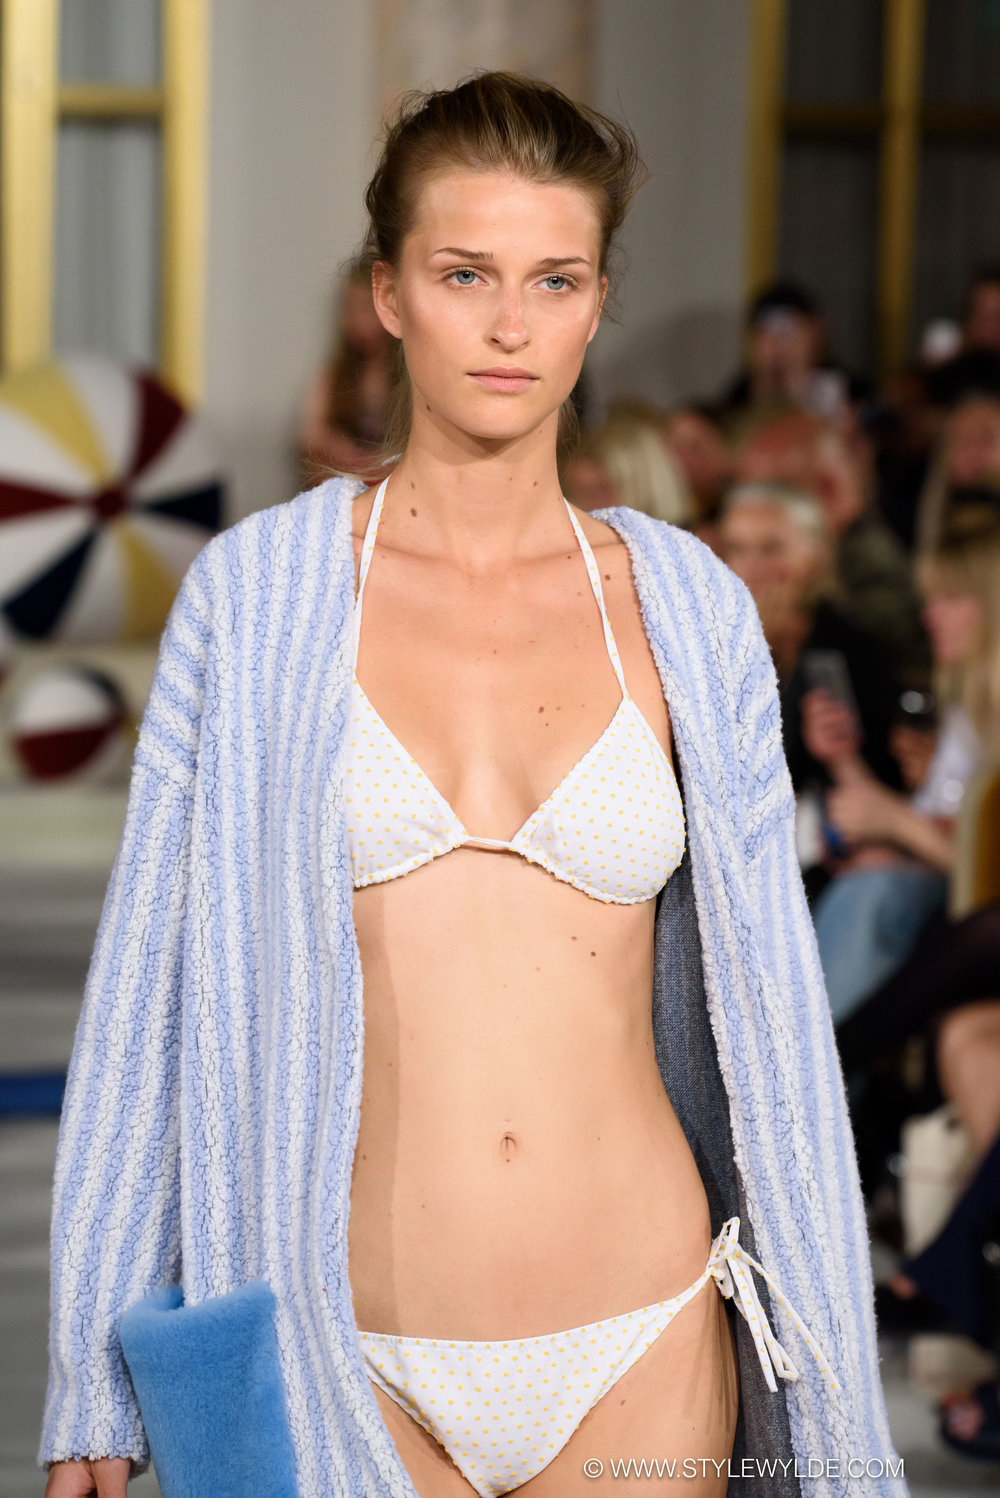 Sexy, but still sweet... - The Anne Vest Spring/Summer 2018 collection was a playful romp from the beach to the office that included a surprising amount of heavy outerwear mixed into the more seasonally expected bikinis and lightweight separates. Fuzzy beachballs appeared as bags, and as details on tops, coats, and sweaters for an added touch of whimsy.